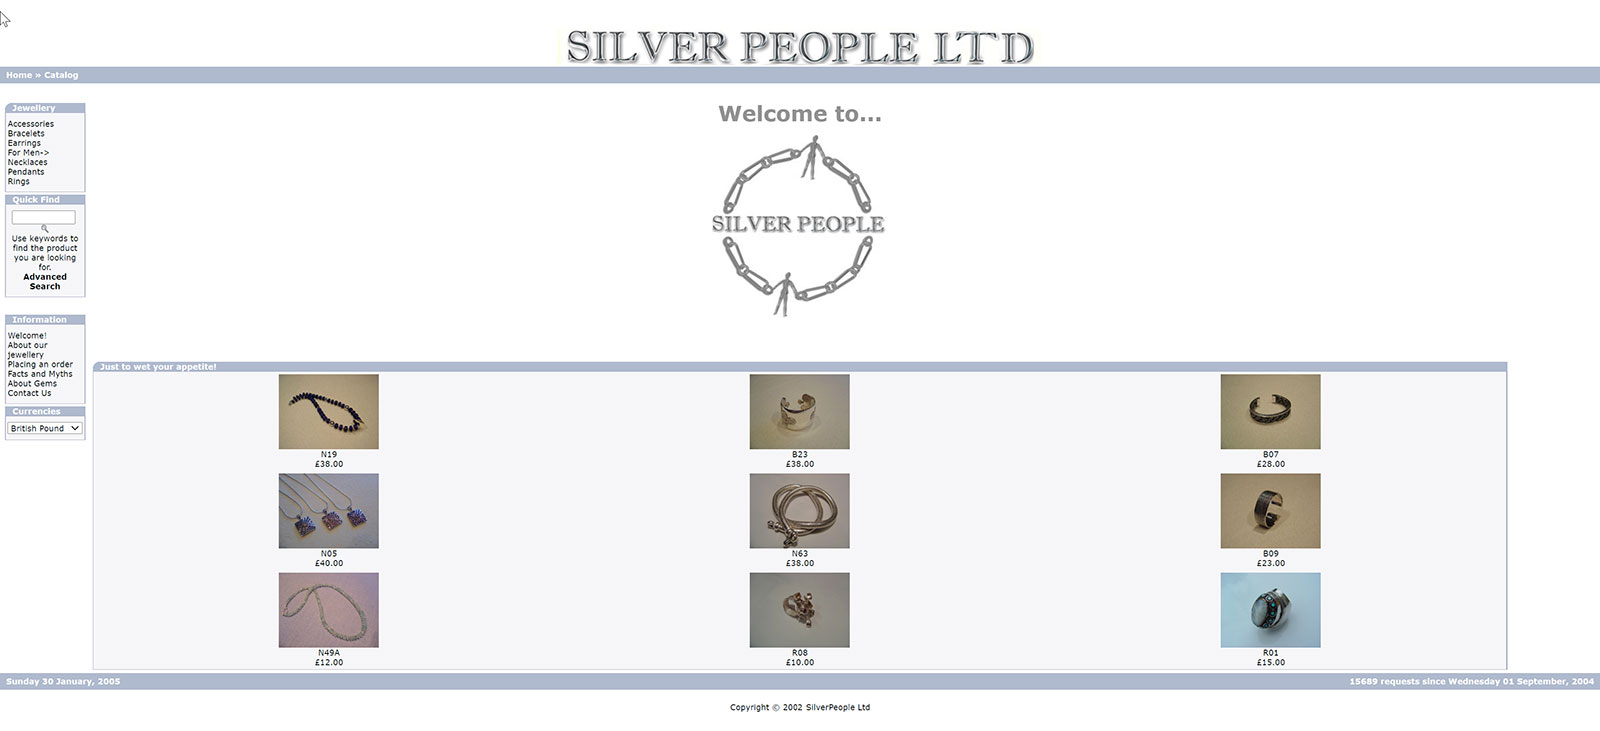 Home page of the website of Silver People Limited